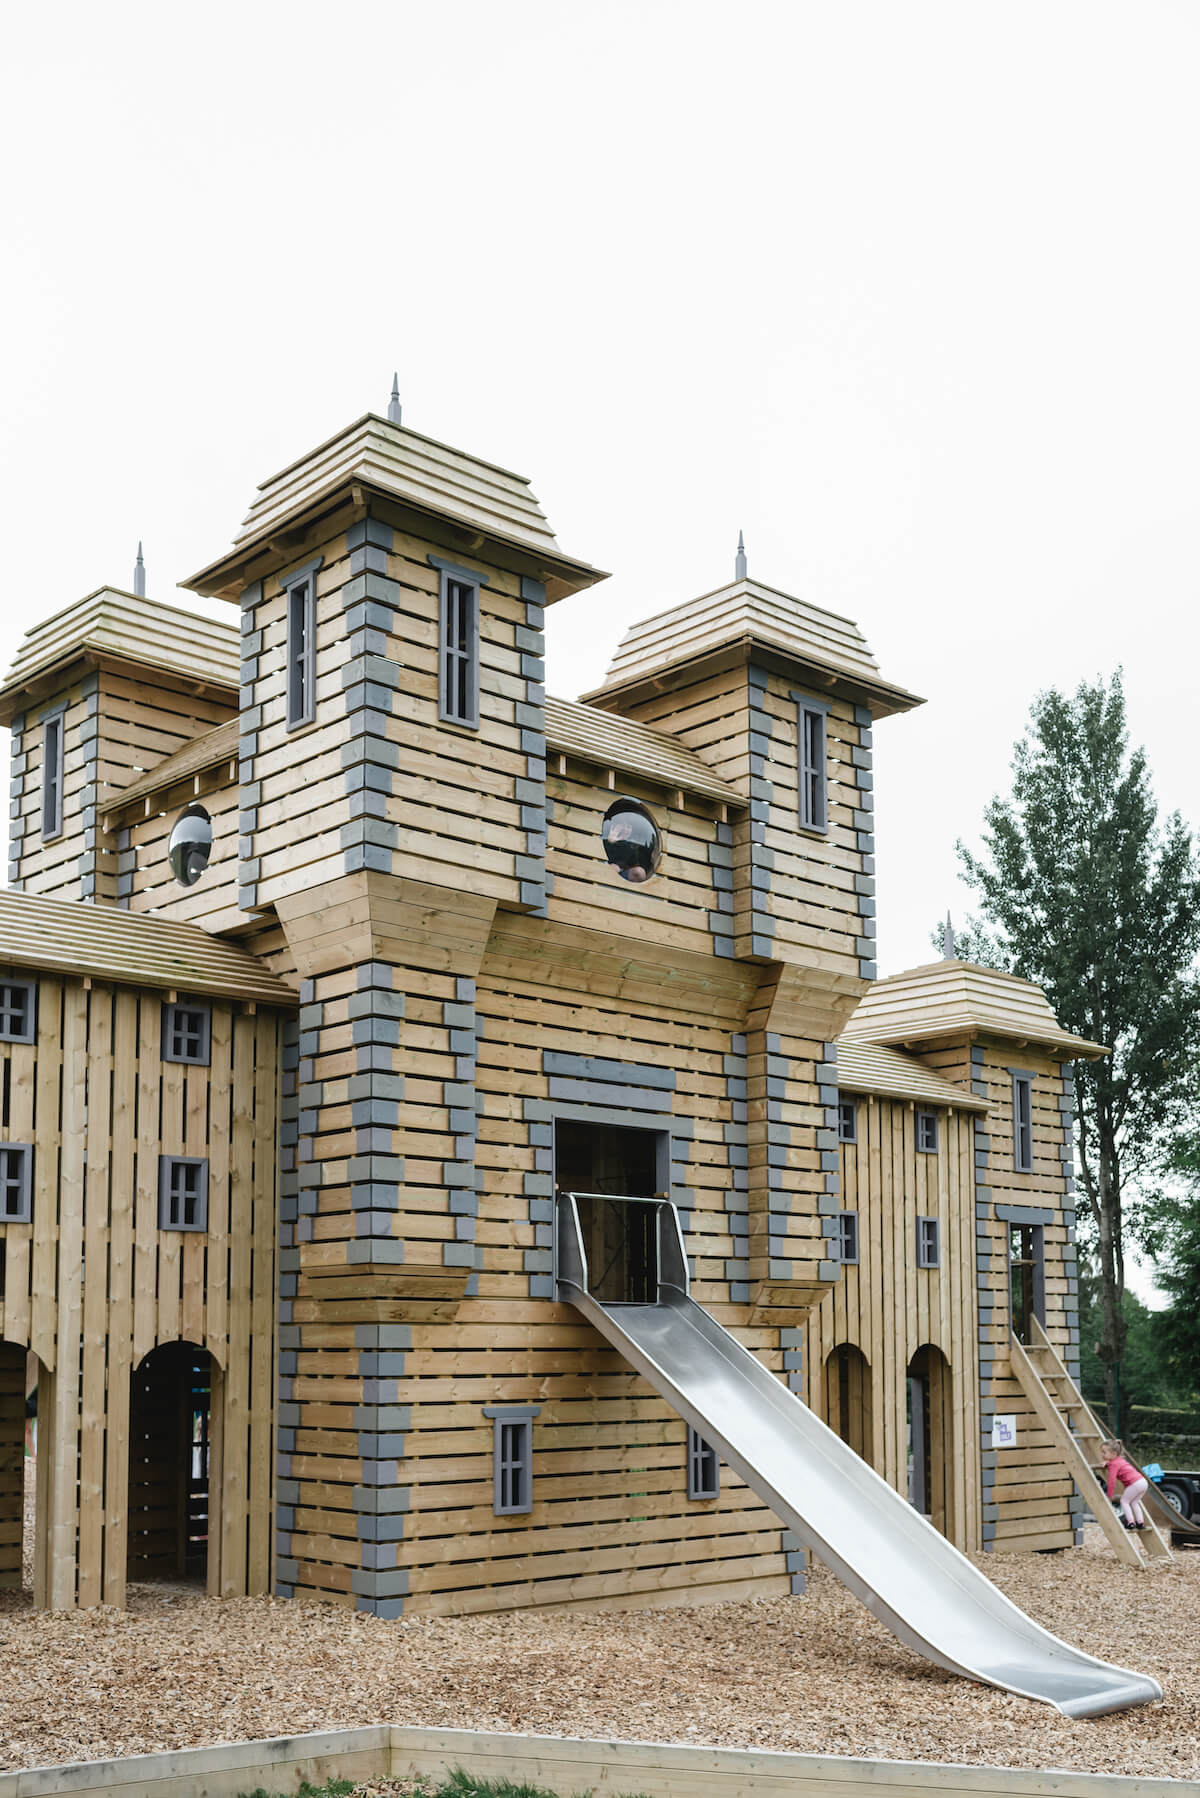 2 Smaller slide at Crieff Hydro Adventure Play CAP.Co